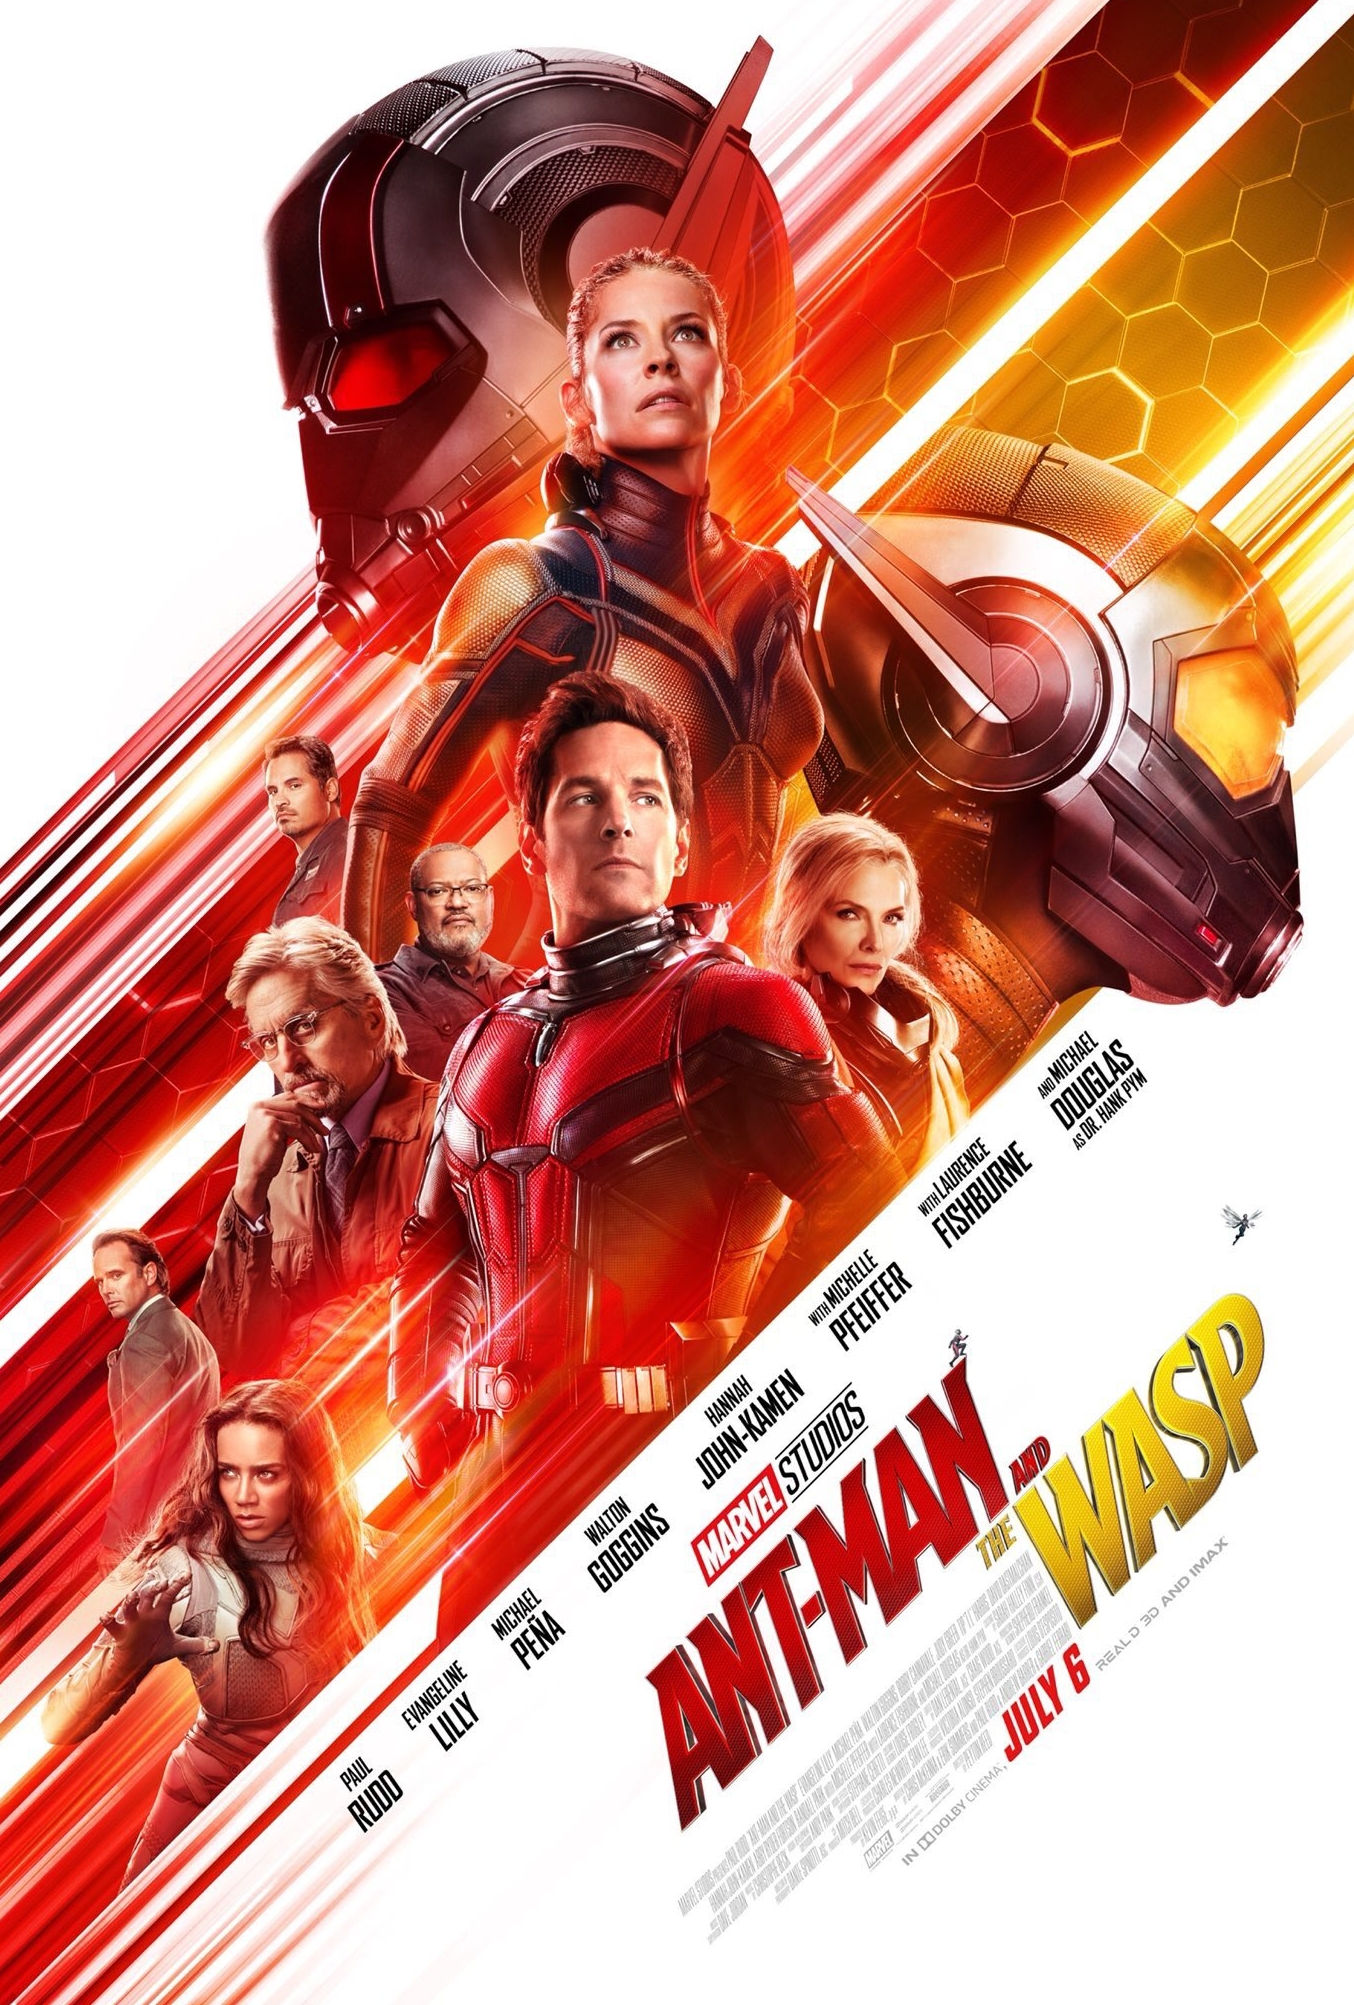 Ant-Man and the Wasp (2018) - Directed by: Peyton ReedStarring: Paul Rudd, Evangeline Lilly, Michael Pena.Rated: PG13Running Time: 1h 58mTMM Score: 3 stars out of 5STRENGTHS: Humor, Enjoyable Action, No Bad Guy That Wants To Take Over The WorldWEAKNESSES: One Too Many Plot Lines